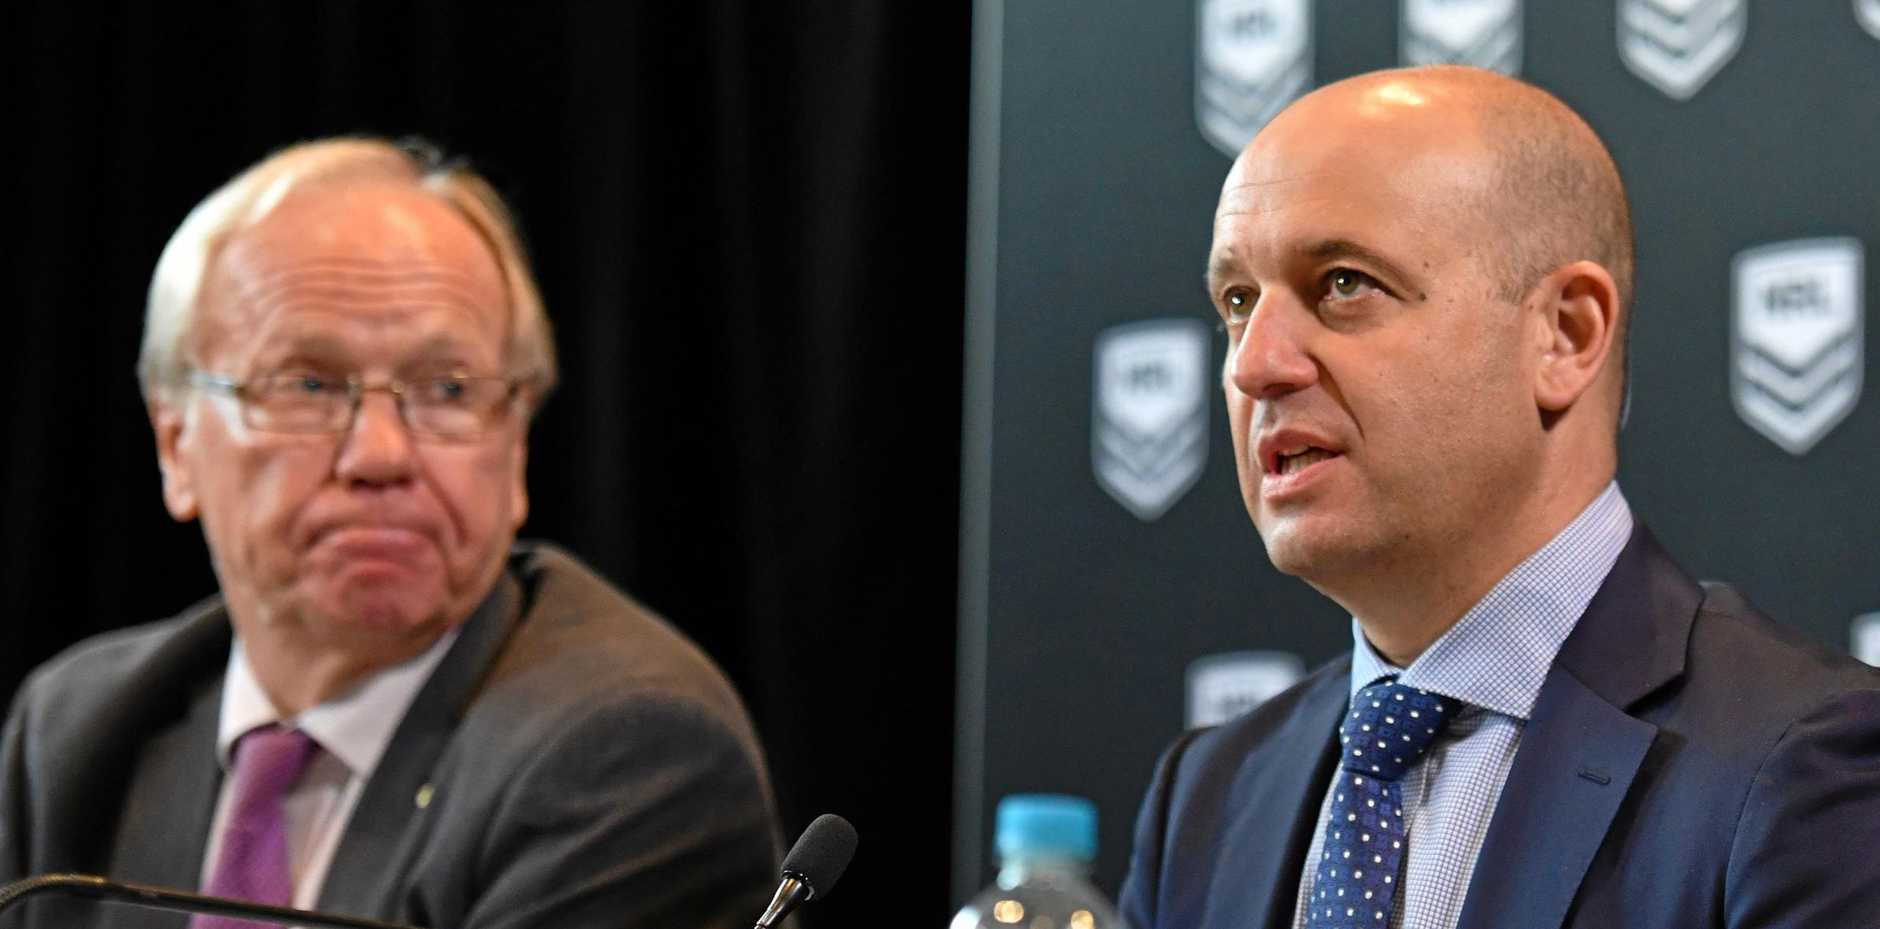 PRESS CONFERENCE: ARL Commission Chairman Peter Beattie and NRL CEO Todd Greenberg at a press conference at NRL headquarters in Sydney on December 13.